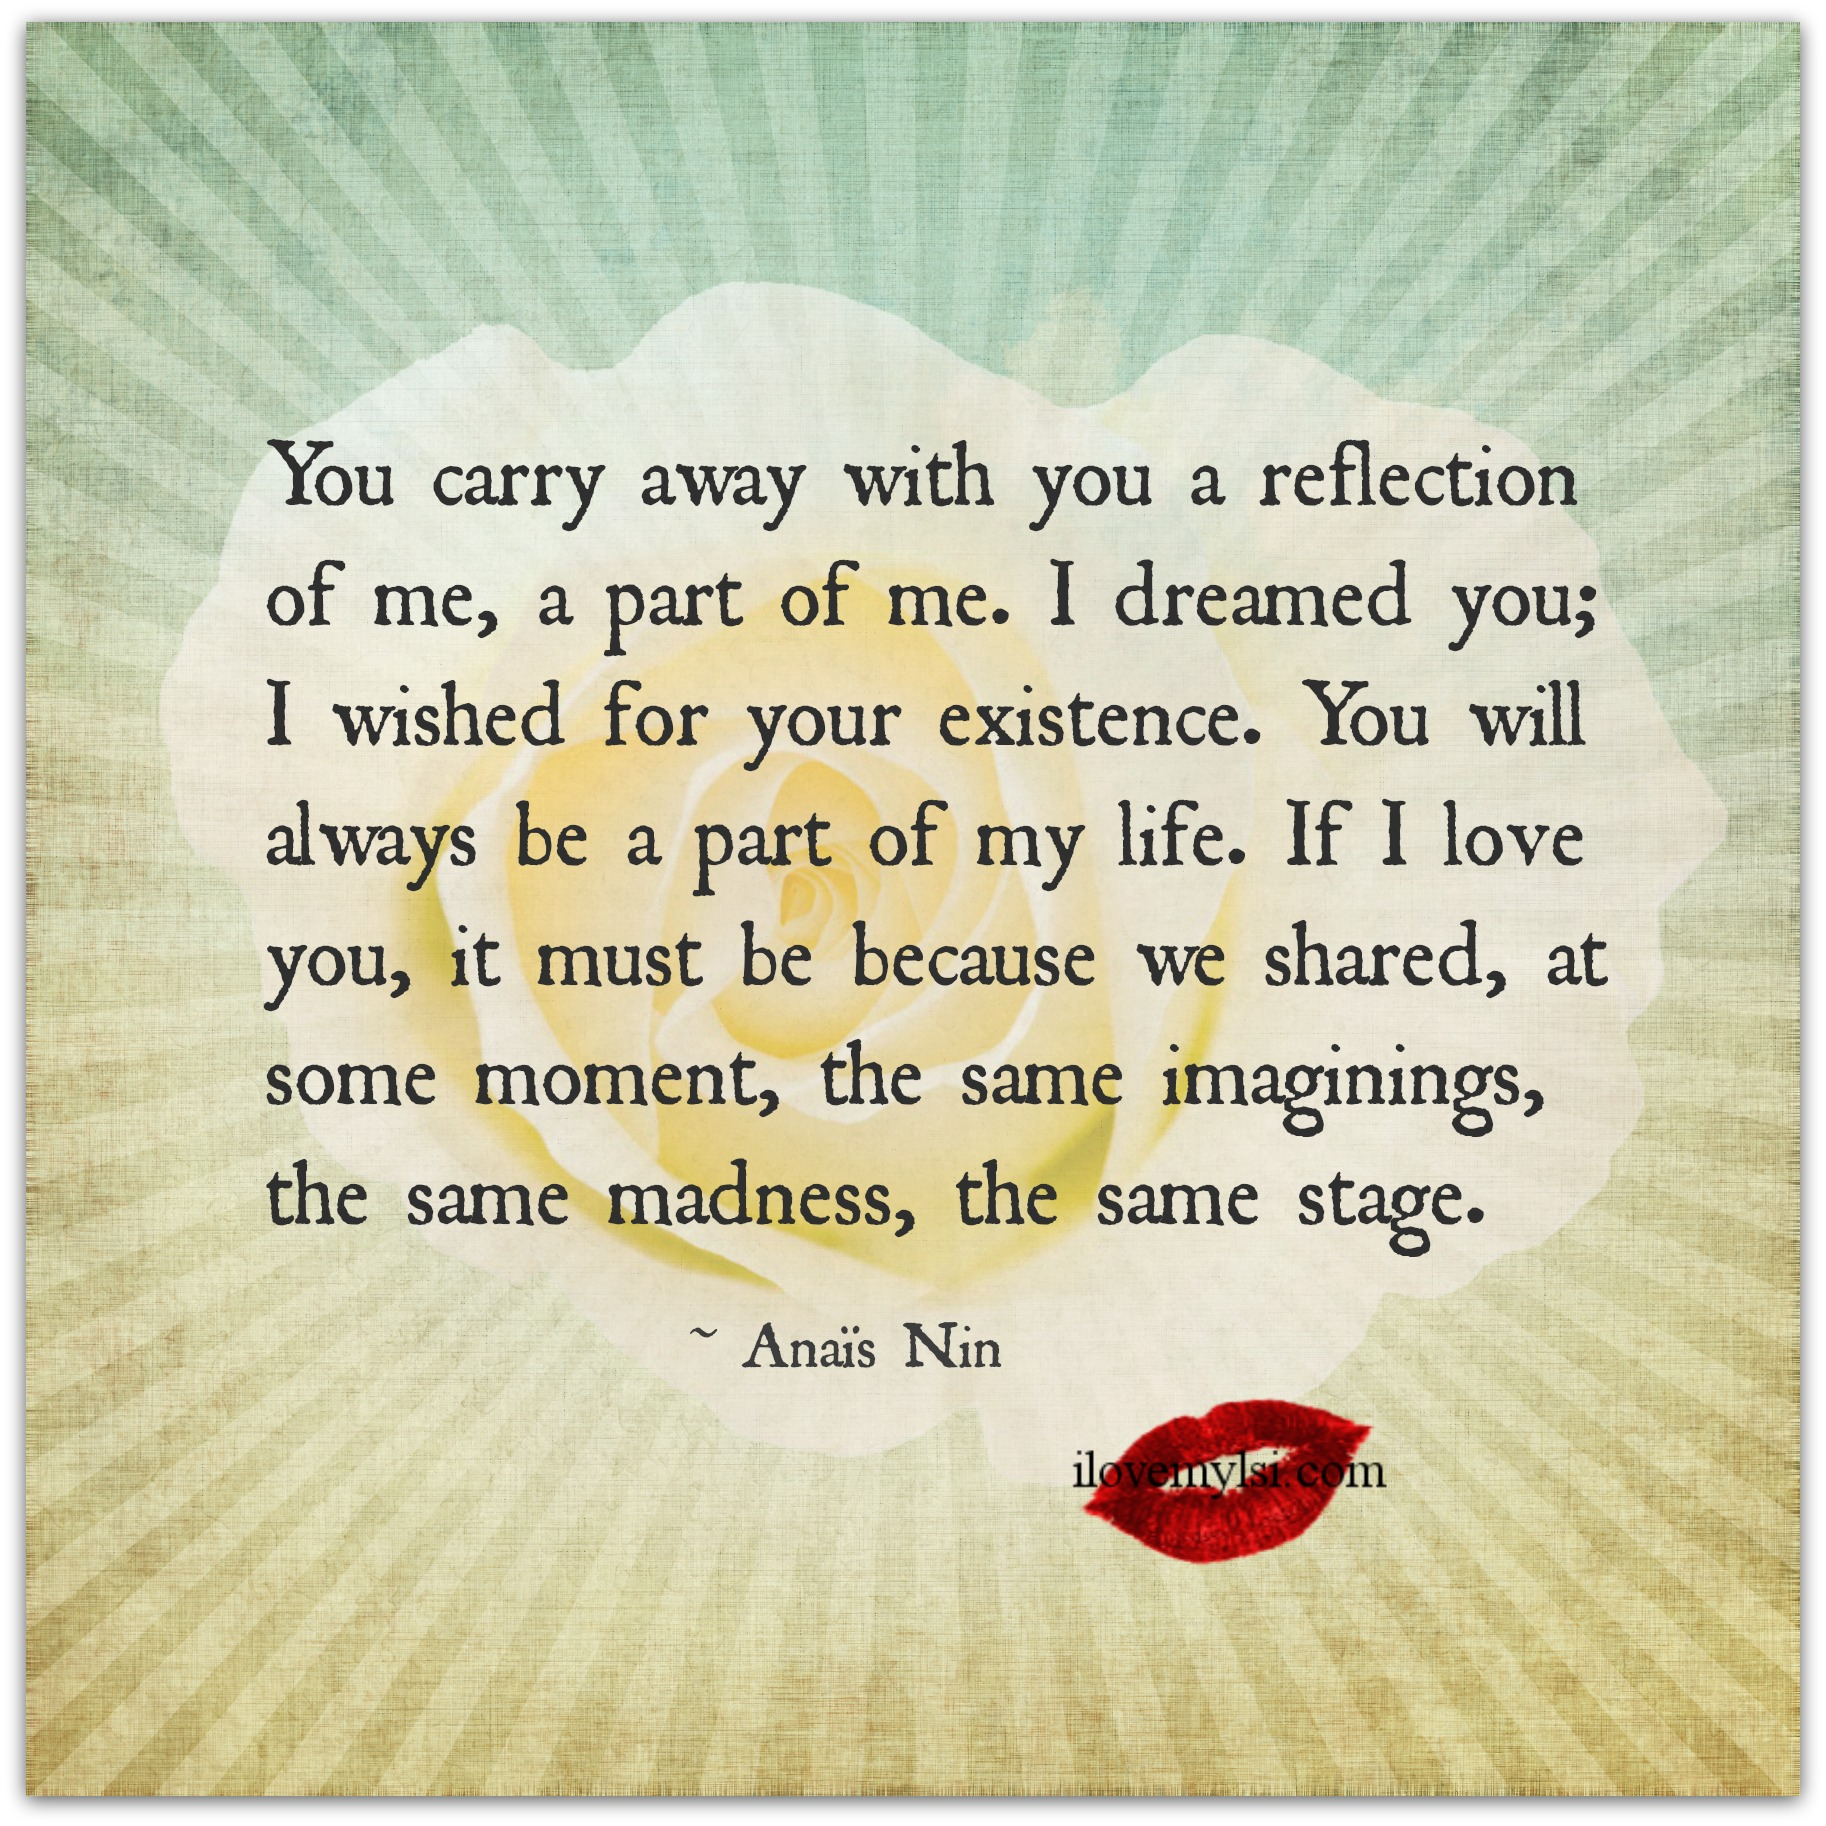 The 25 Most Romantic Love Quotes You Will Ever Read: Anais Nin Quotes Relationships. QuotesGram